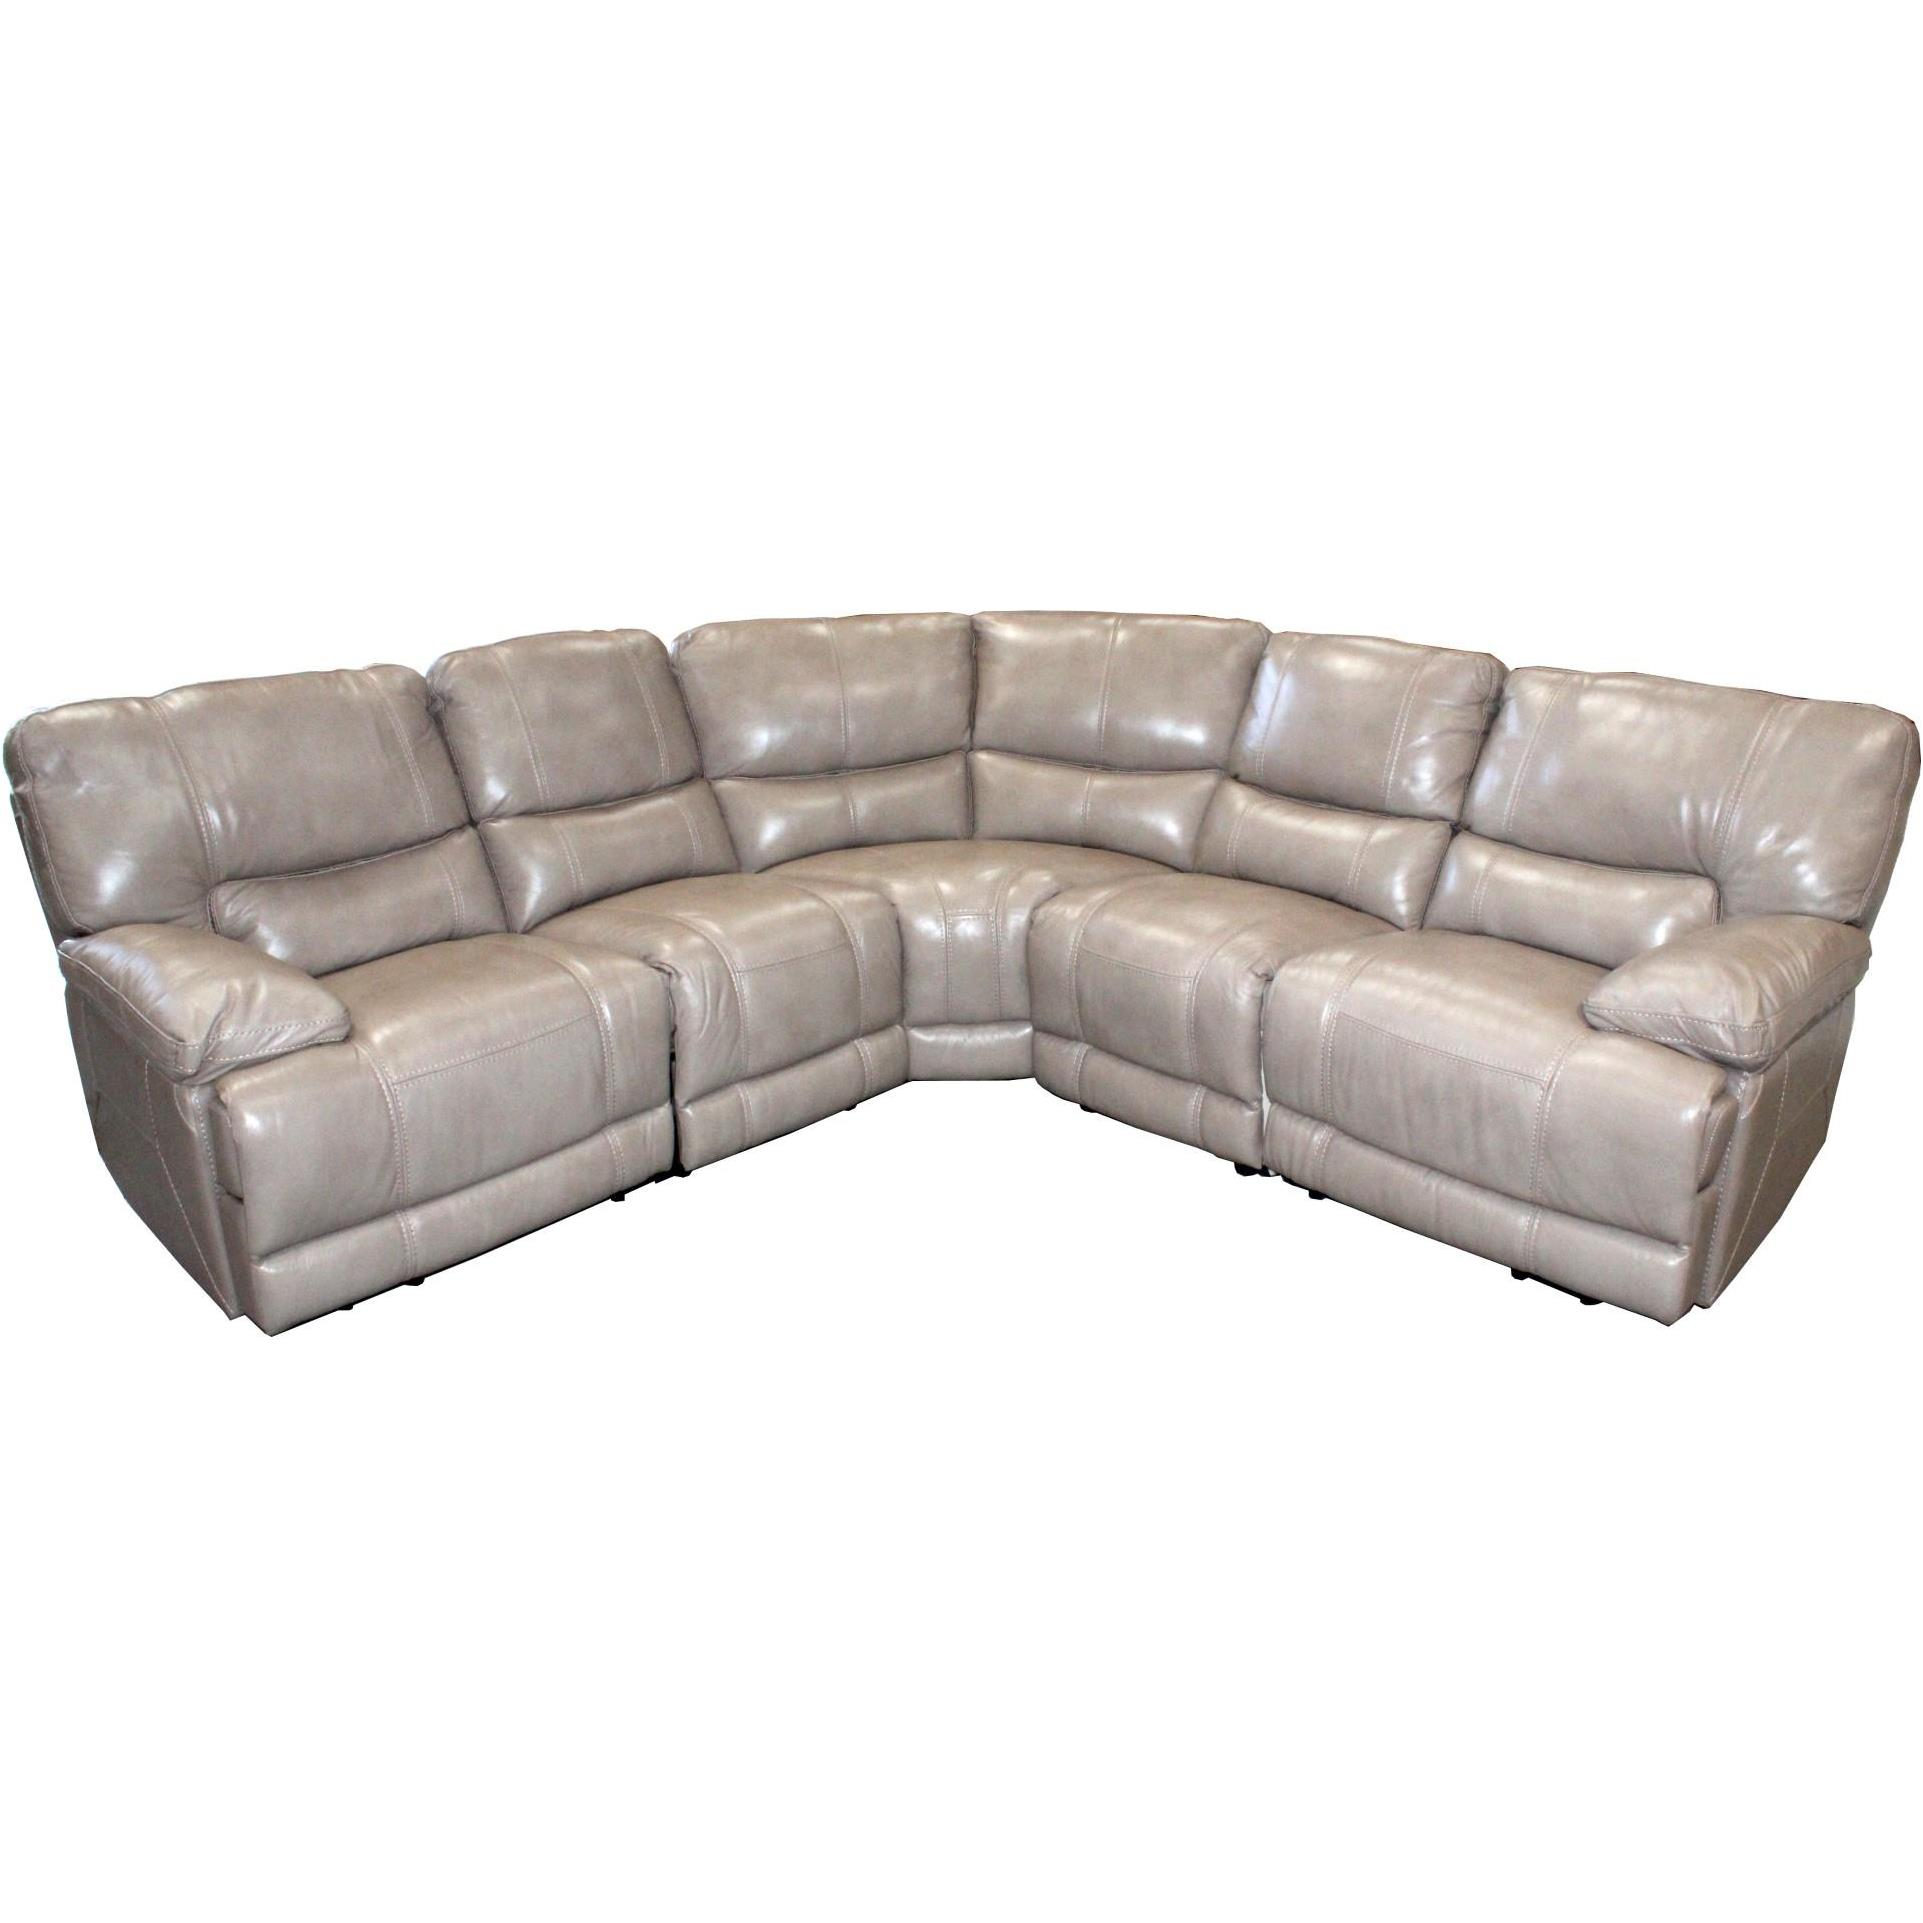 Parker Living Socrates Casual Sectional - Item Number: MSOC-PACKN-LA